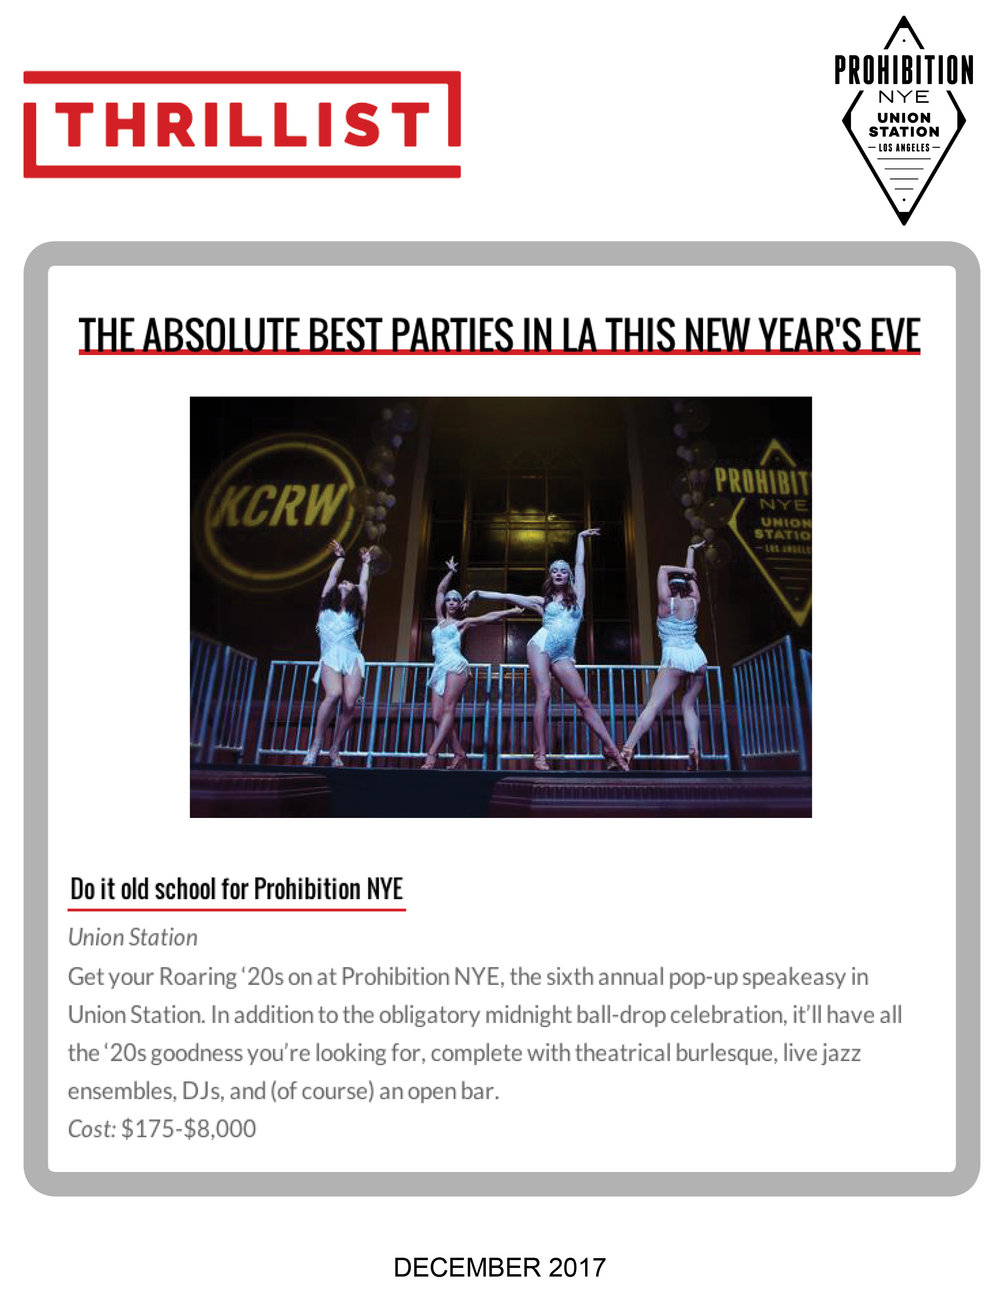 ProhibitionNYE_Thrillist_December2017.jpg